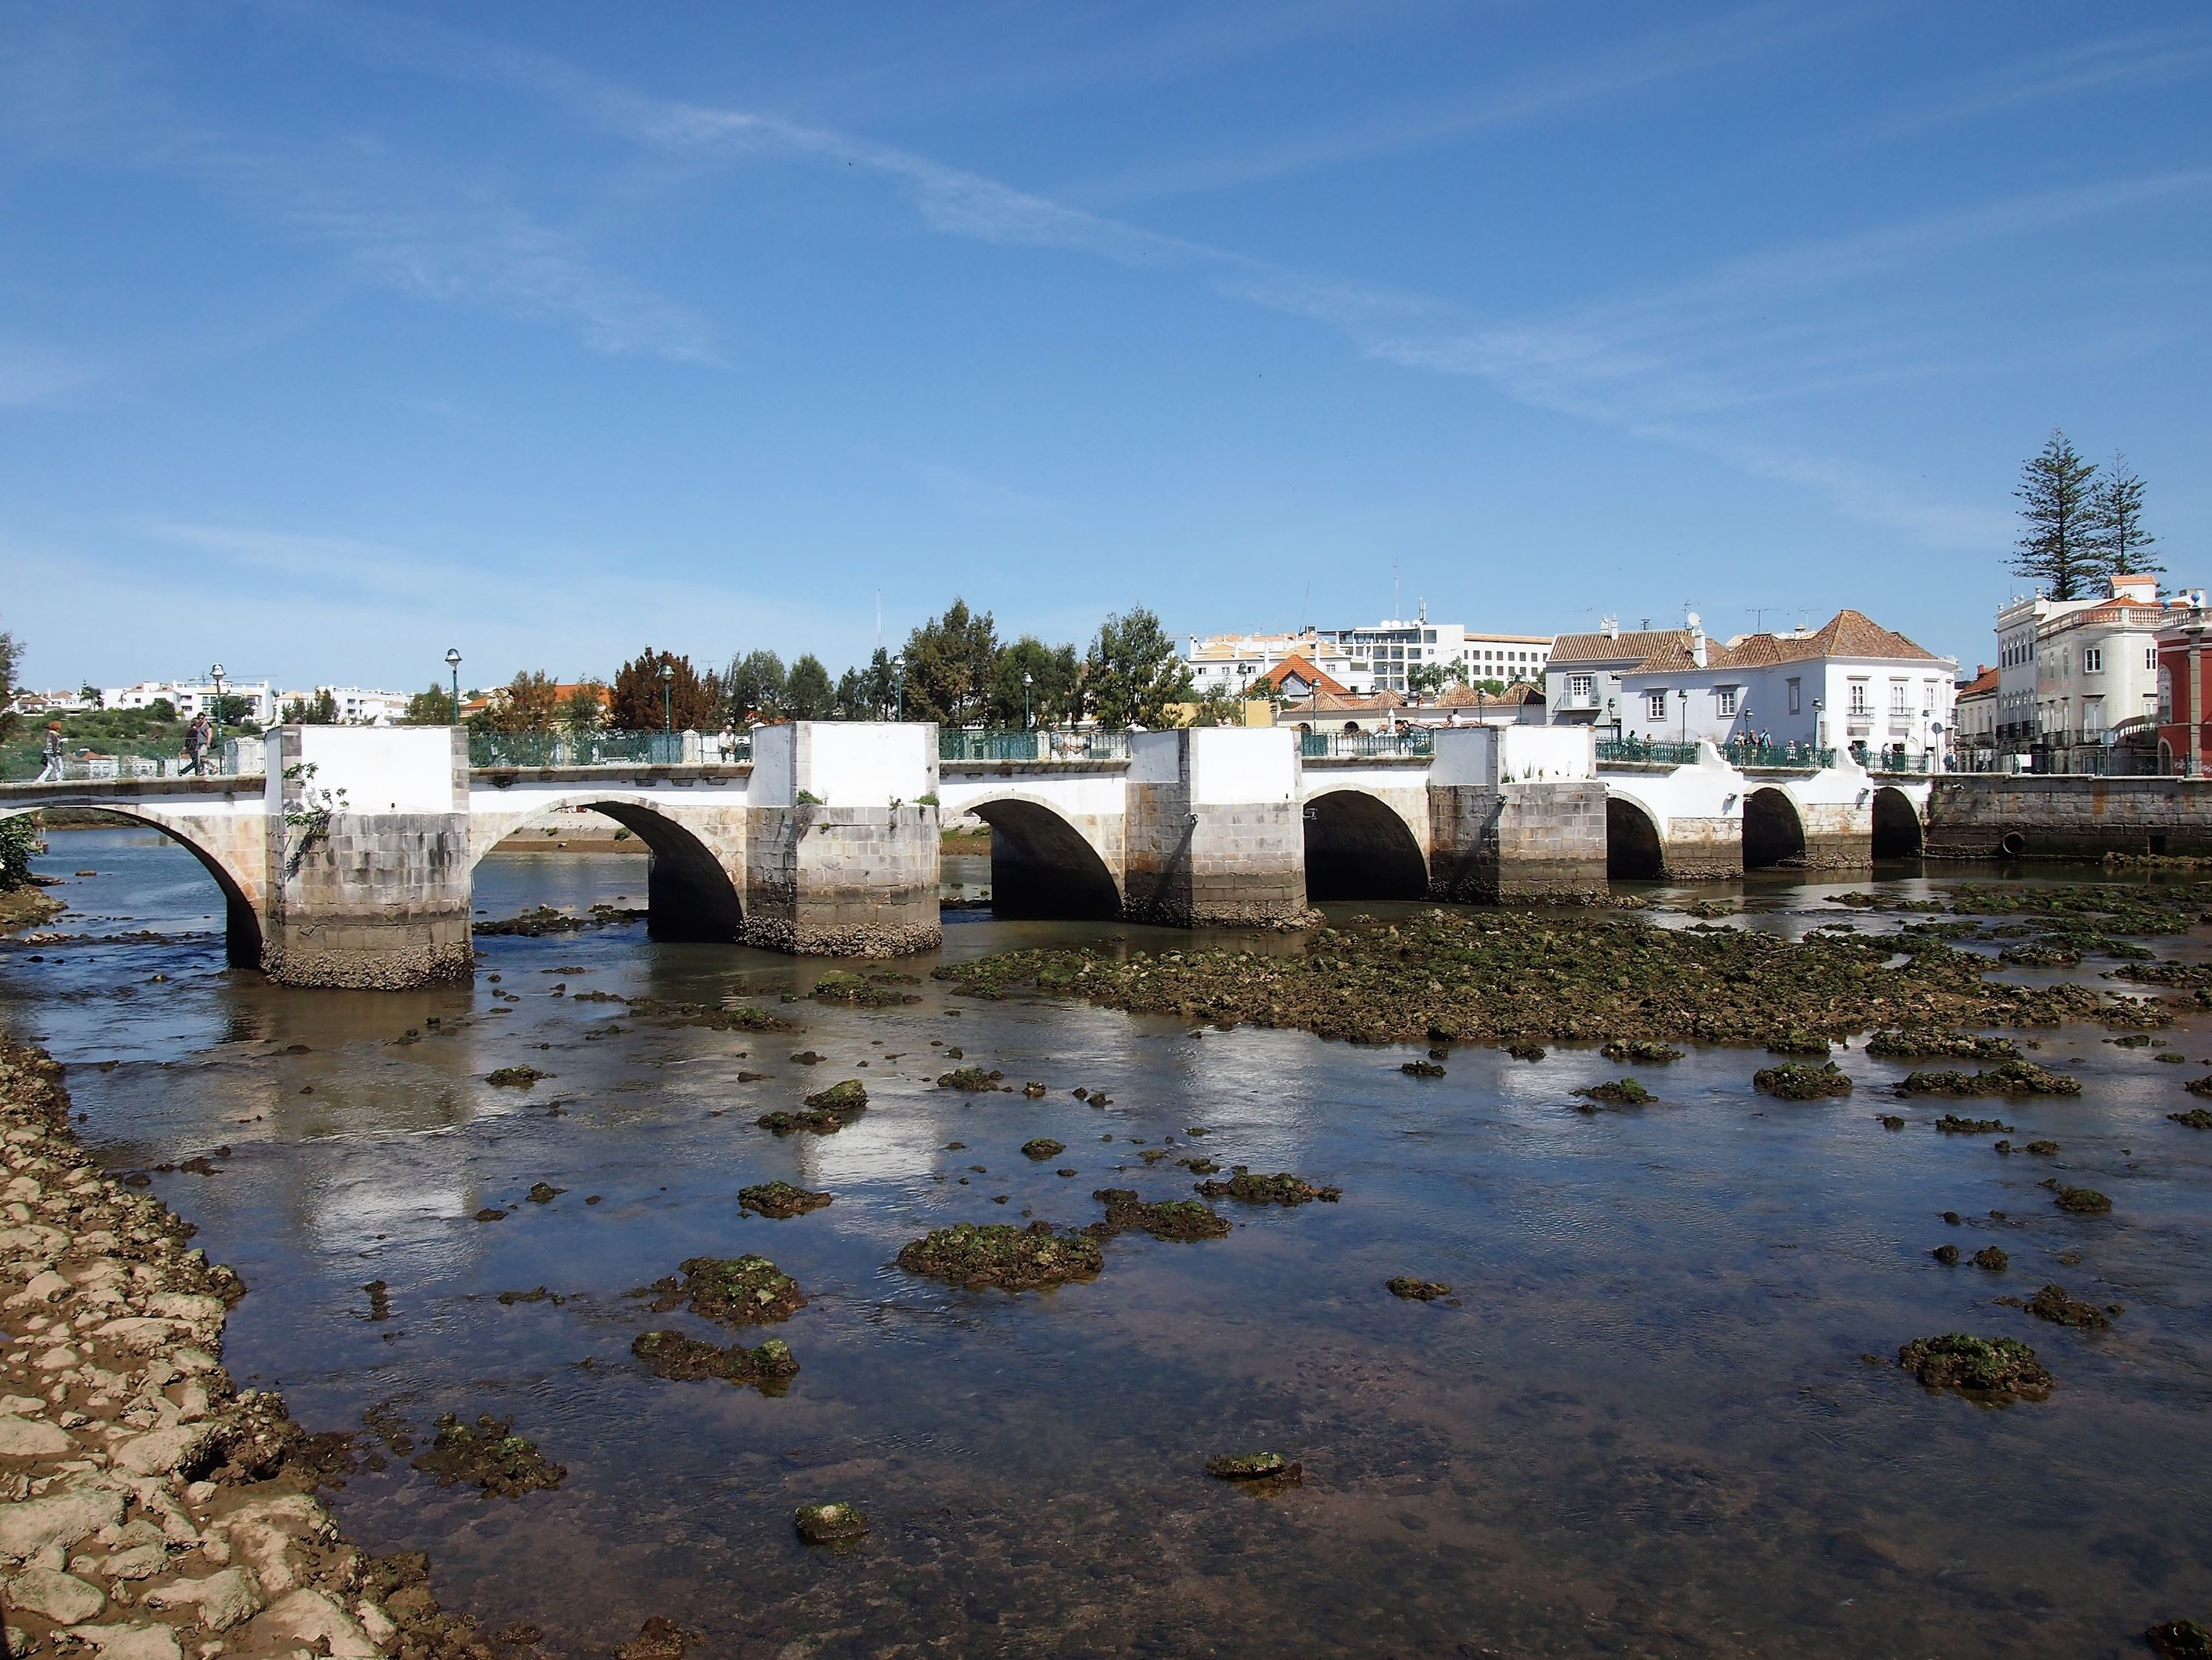 The Roman bridge (not actually Roman) which crosses the Gilão River in Tavira